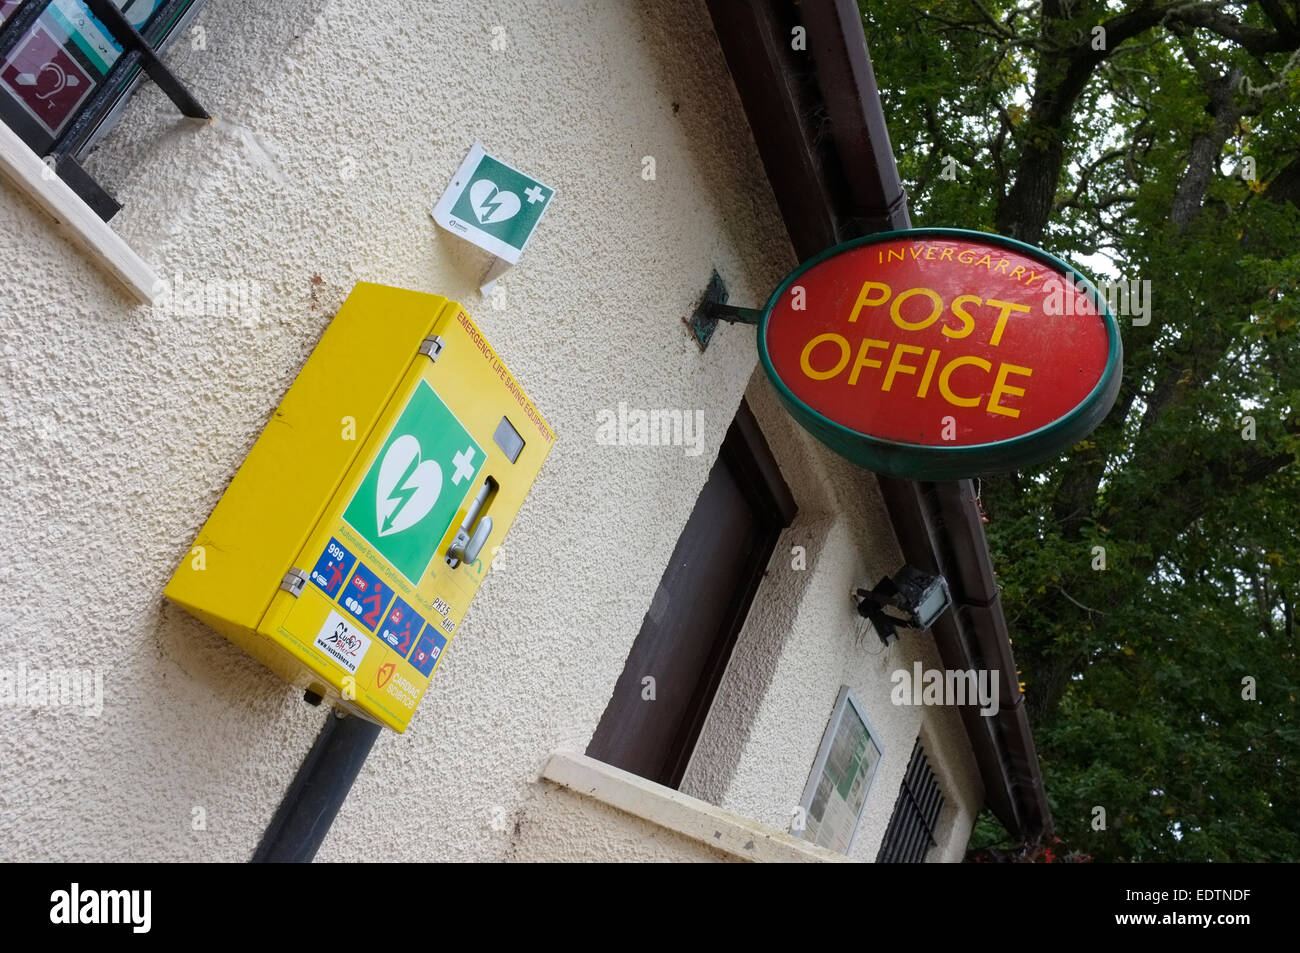 Public access defibrillator (PAD) on wall of rural post office in Scotland - Stock Image